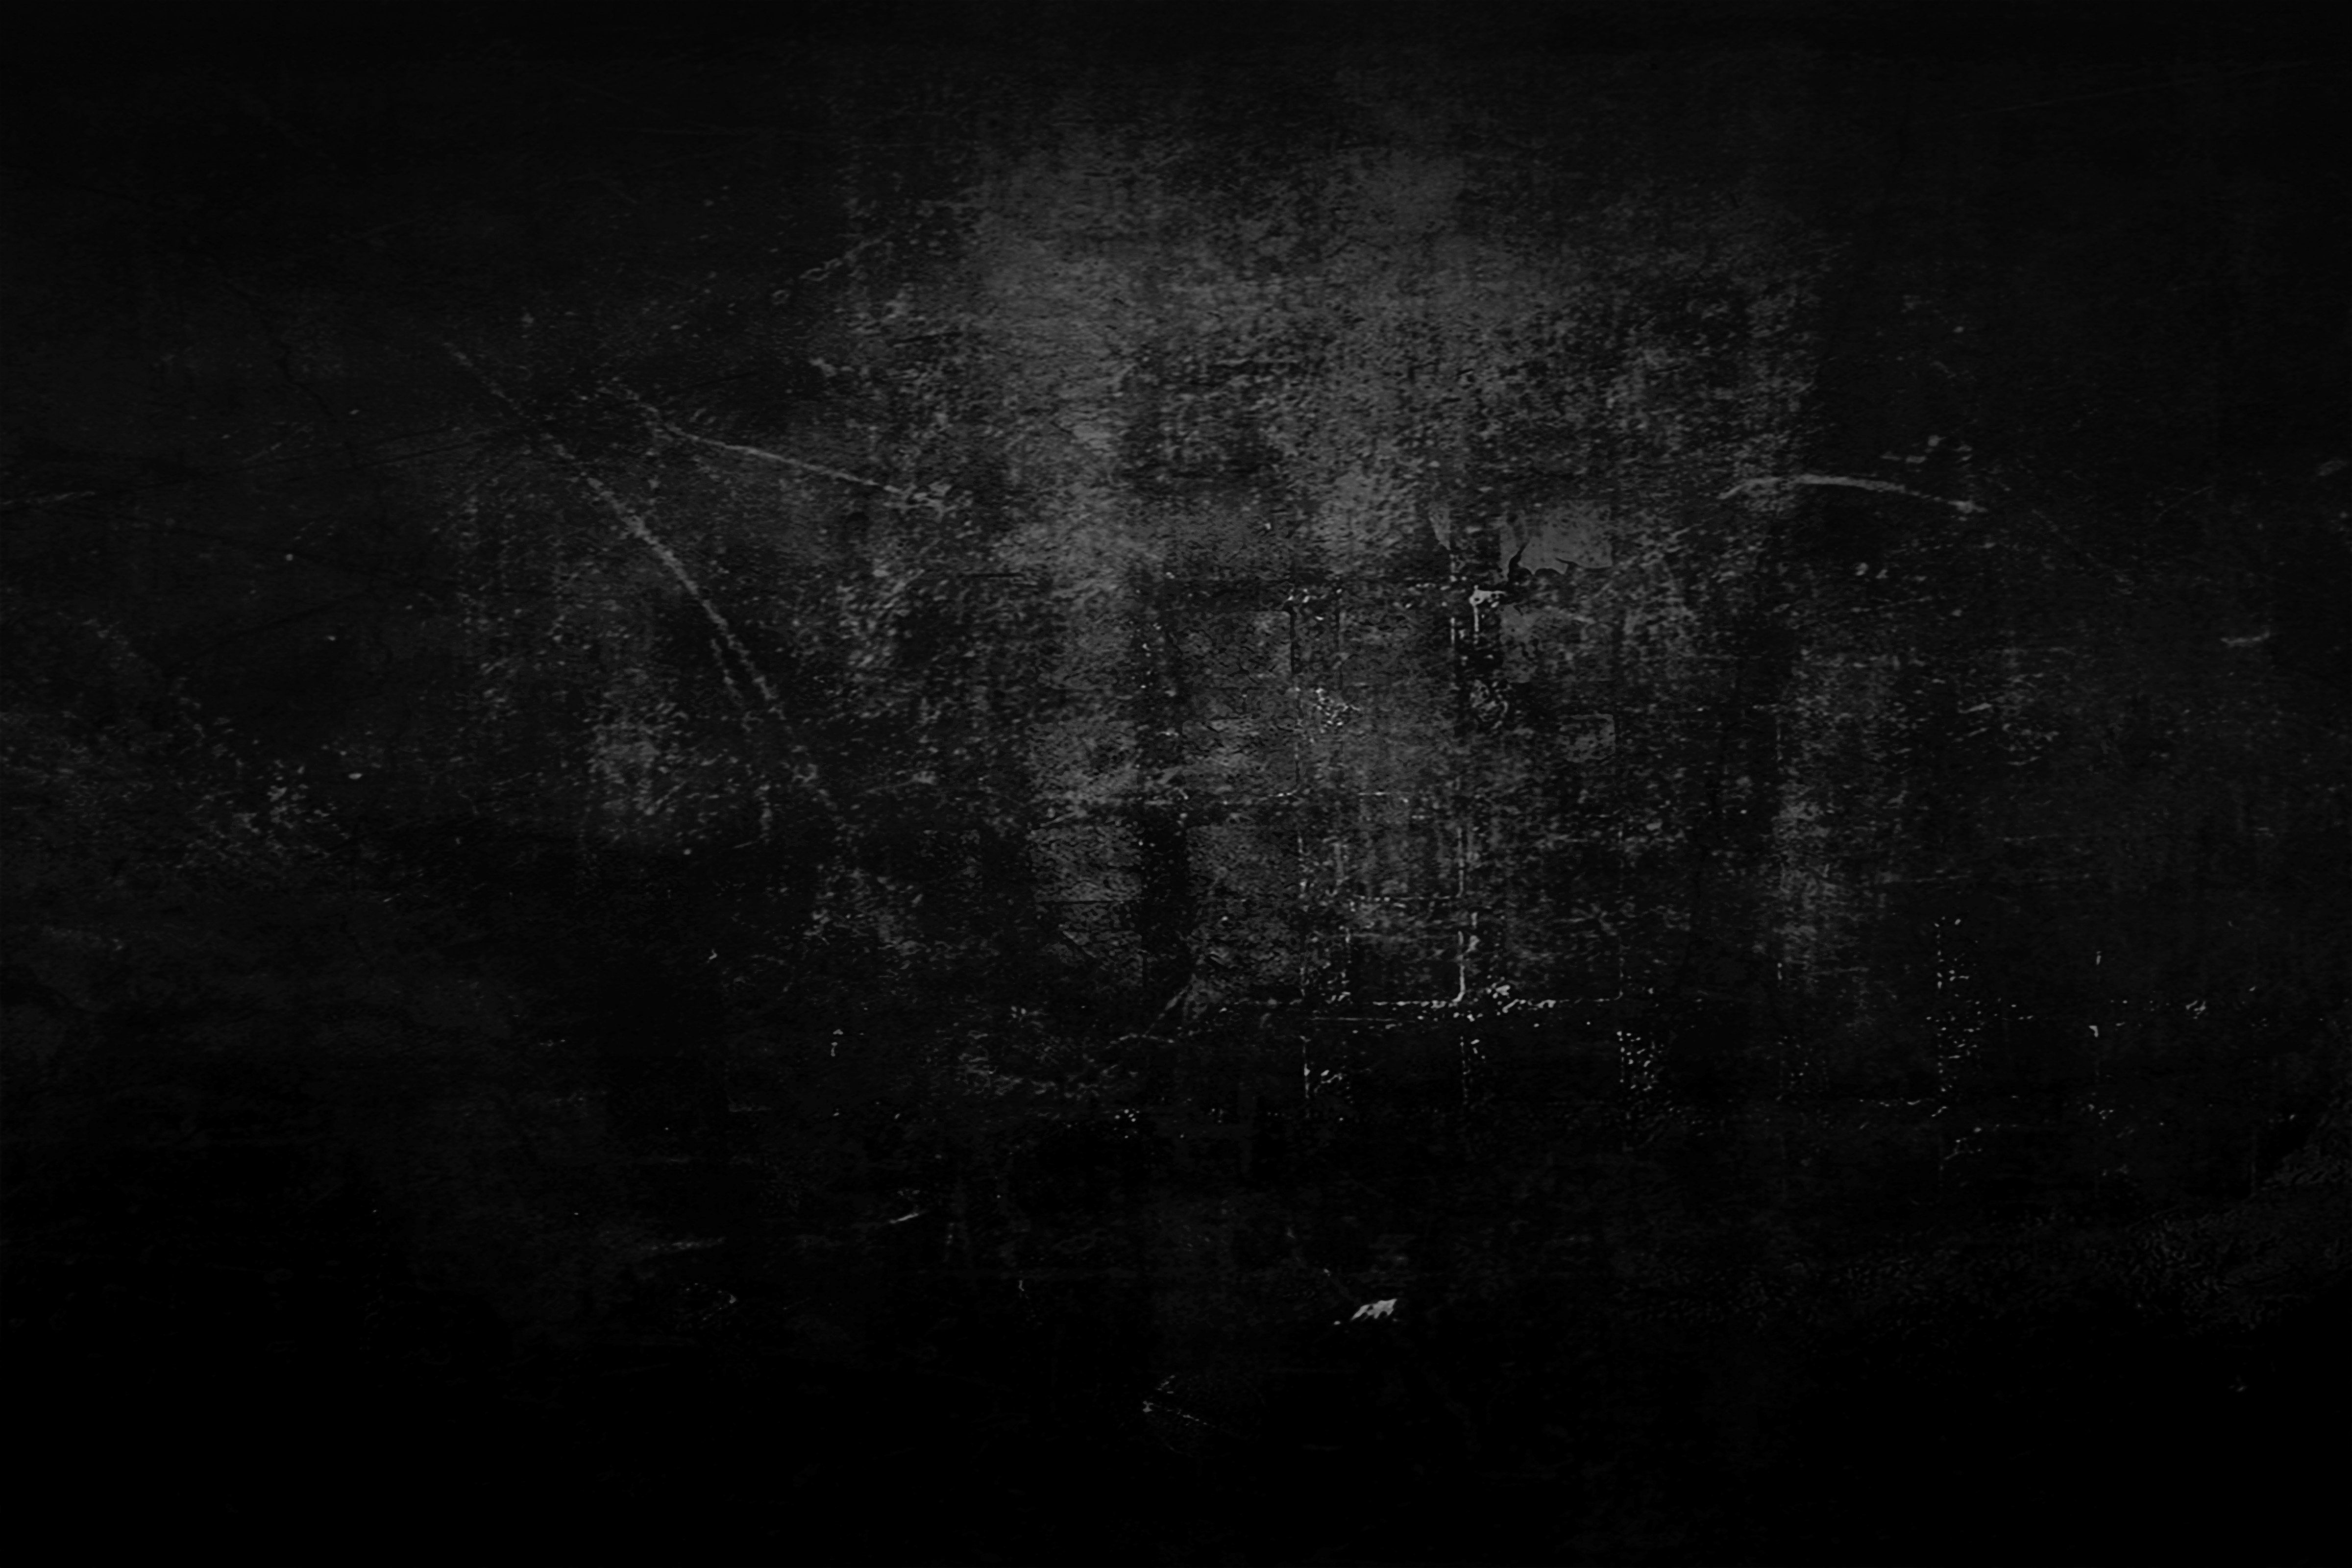 Dark Grunge textures taken from other images converted to black 4800x3200